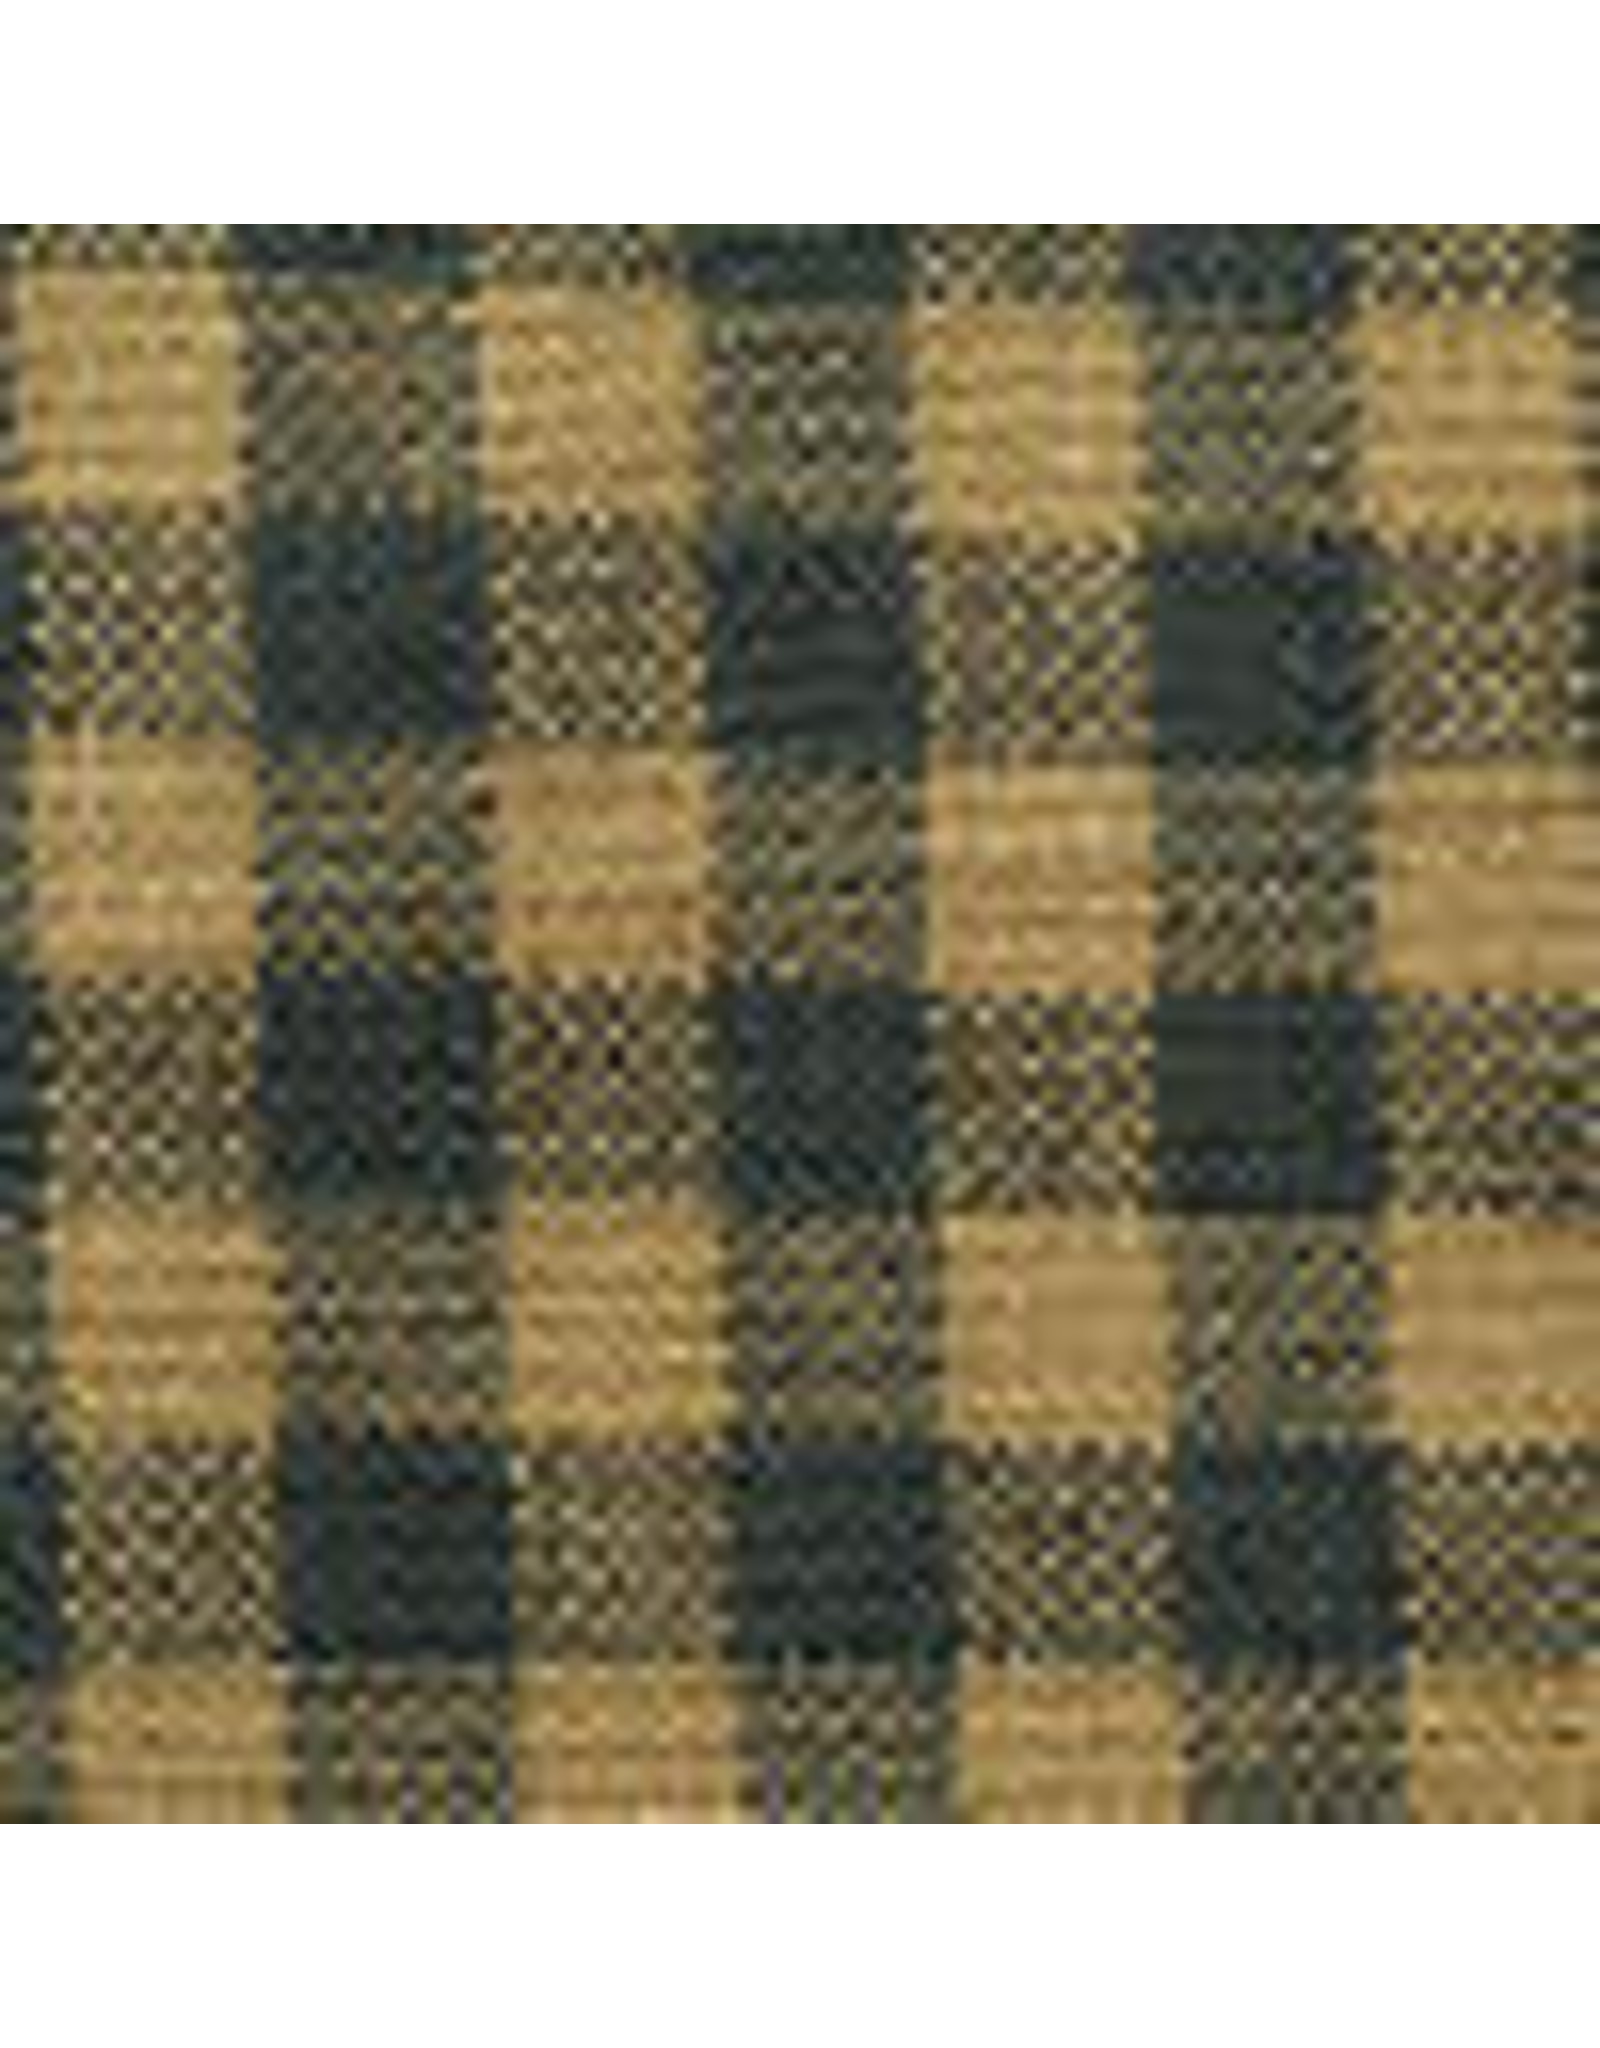 Yd. Green and Tan Little Square Check Fabric #404